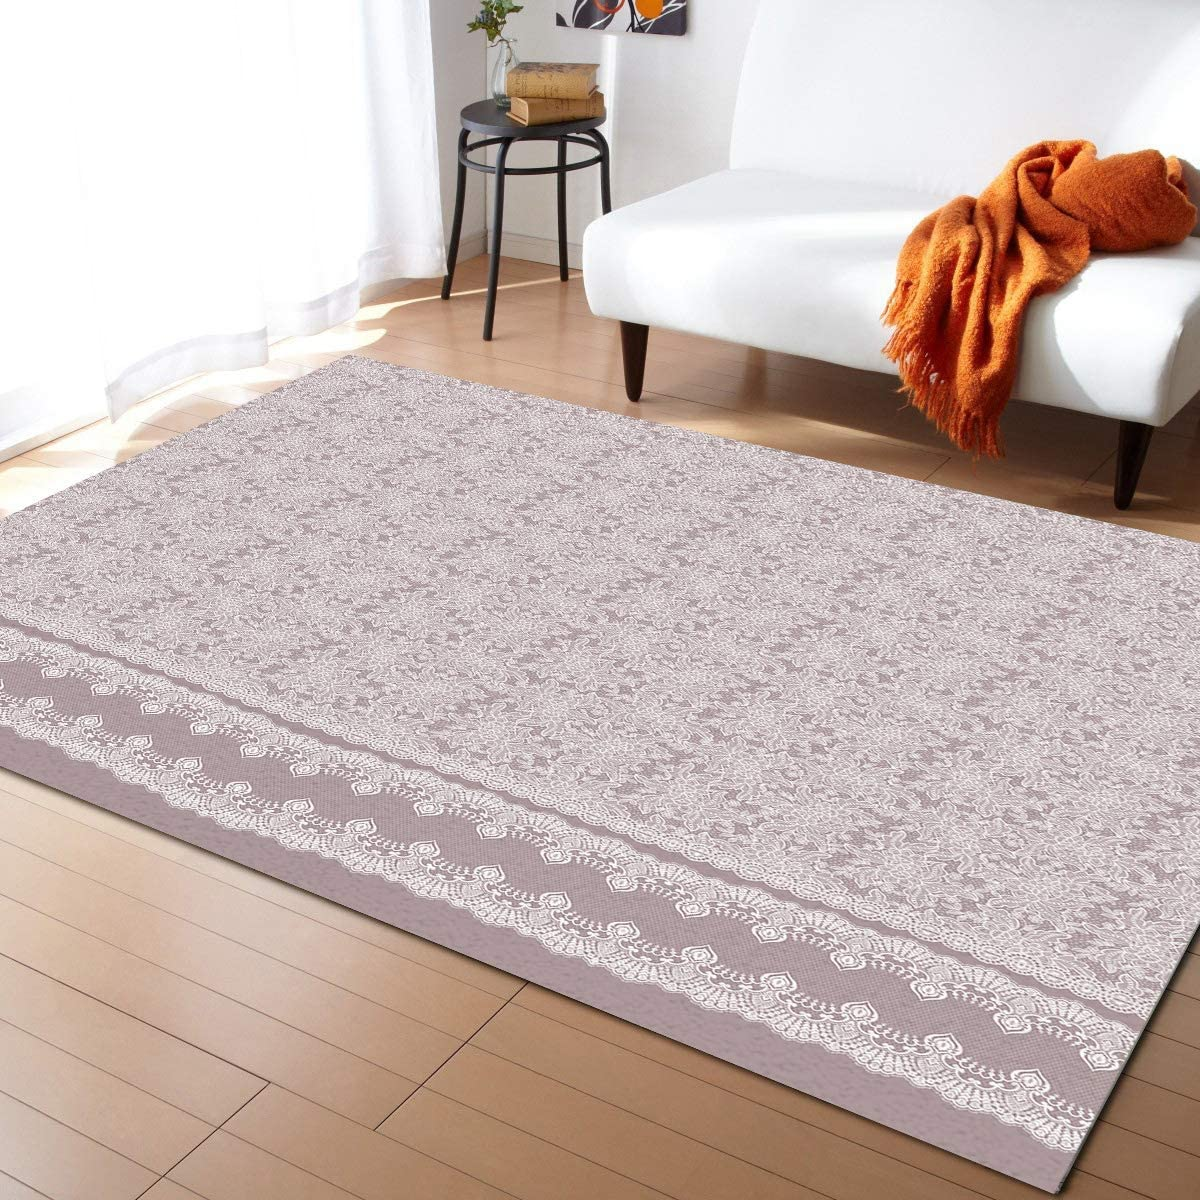 Olivefox Ranking TOP11 5x8 Feet Area Rug Floor Pink Pattern on Purpl Mat Don't miss the campaign Lace